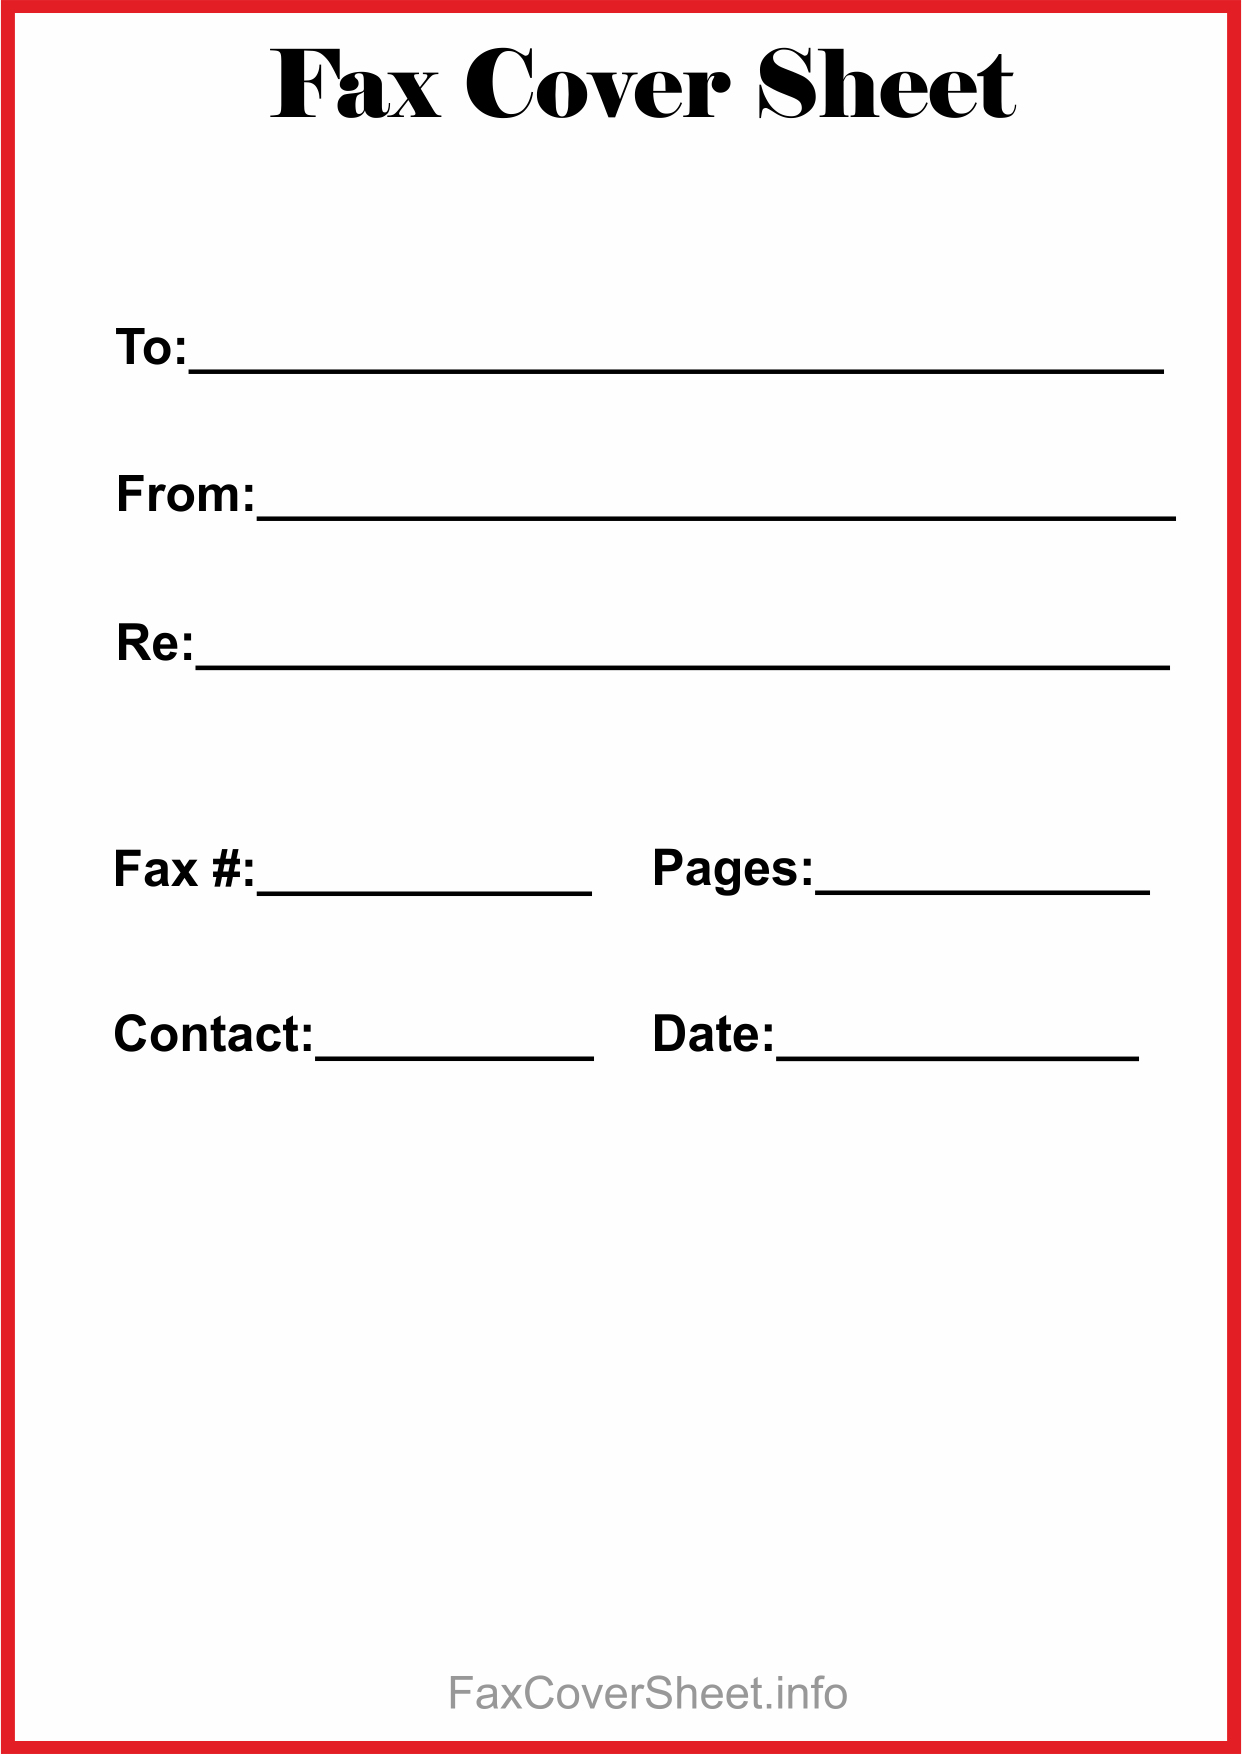 Free]^^ Fax Cover Sheet Template - Free Printable Fax Cover Sheet